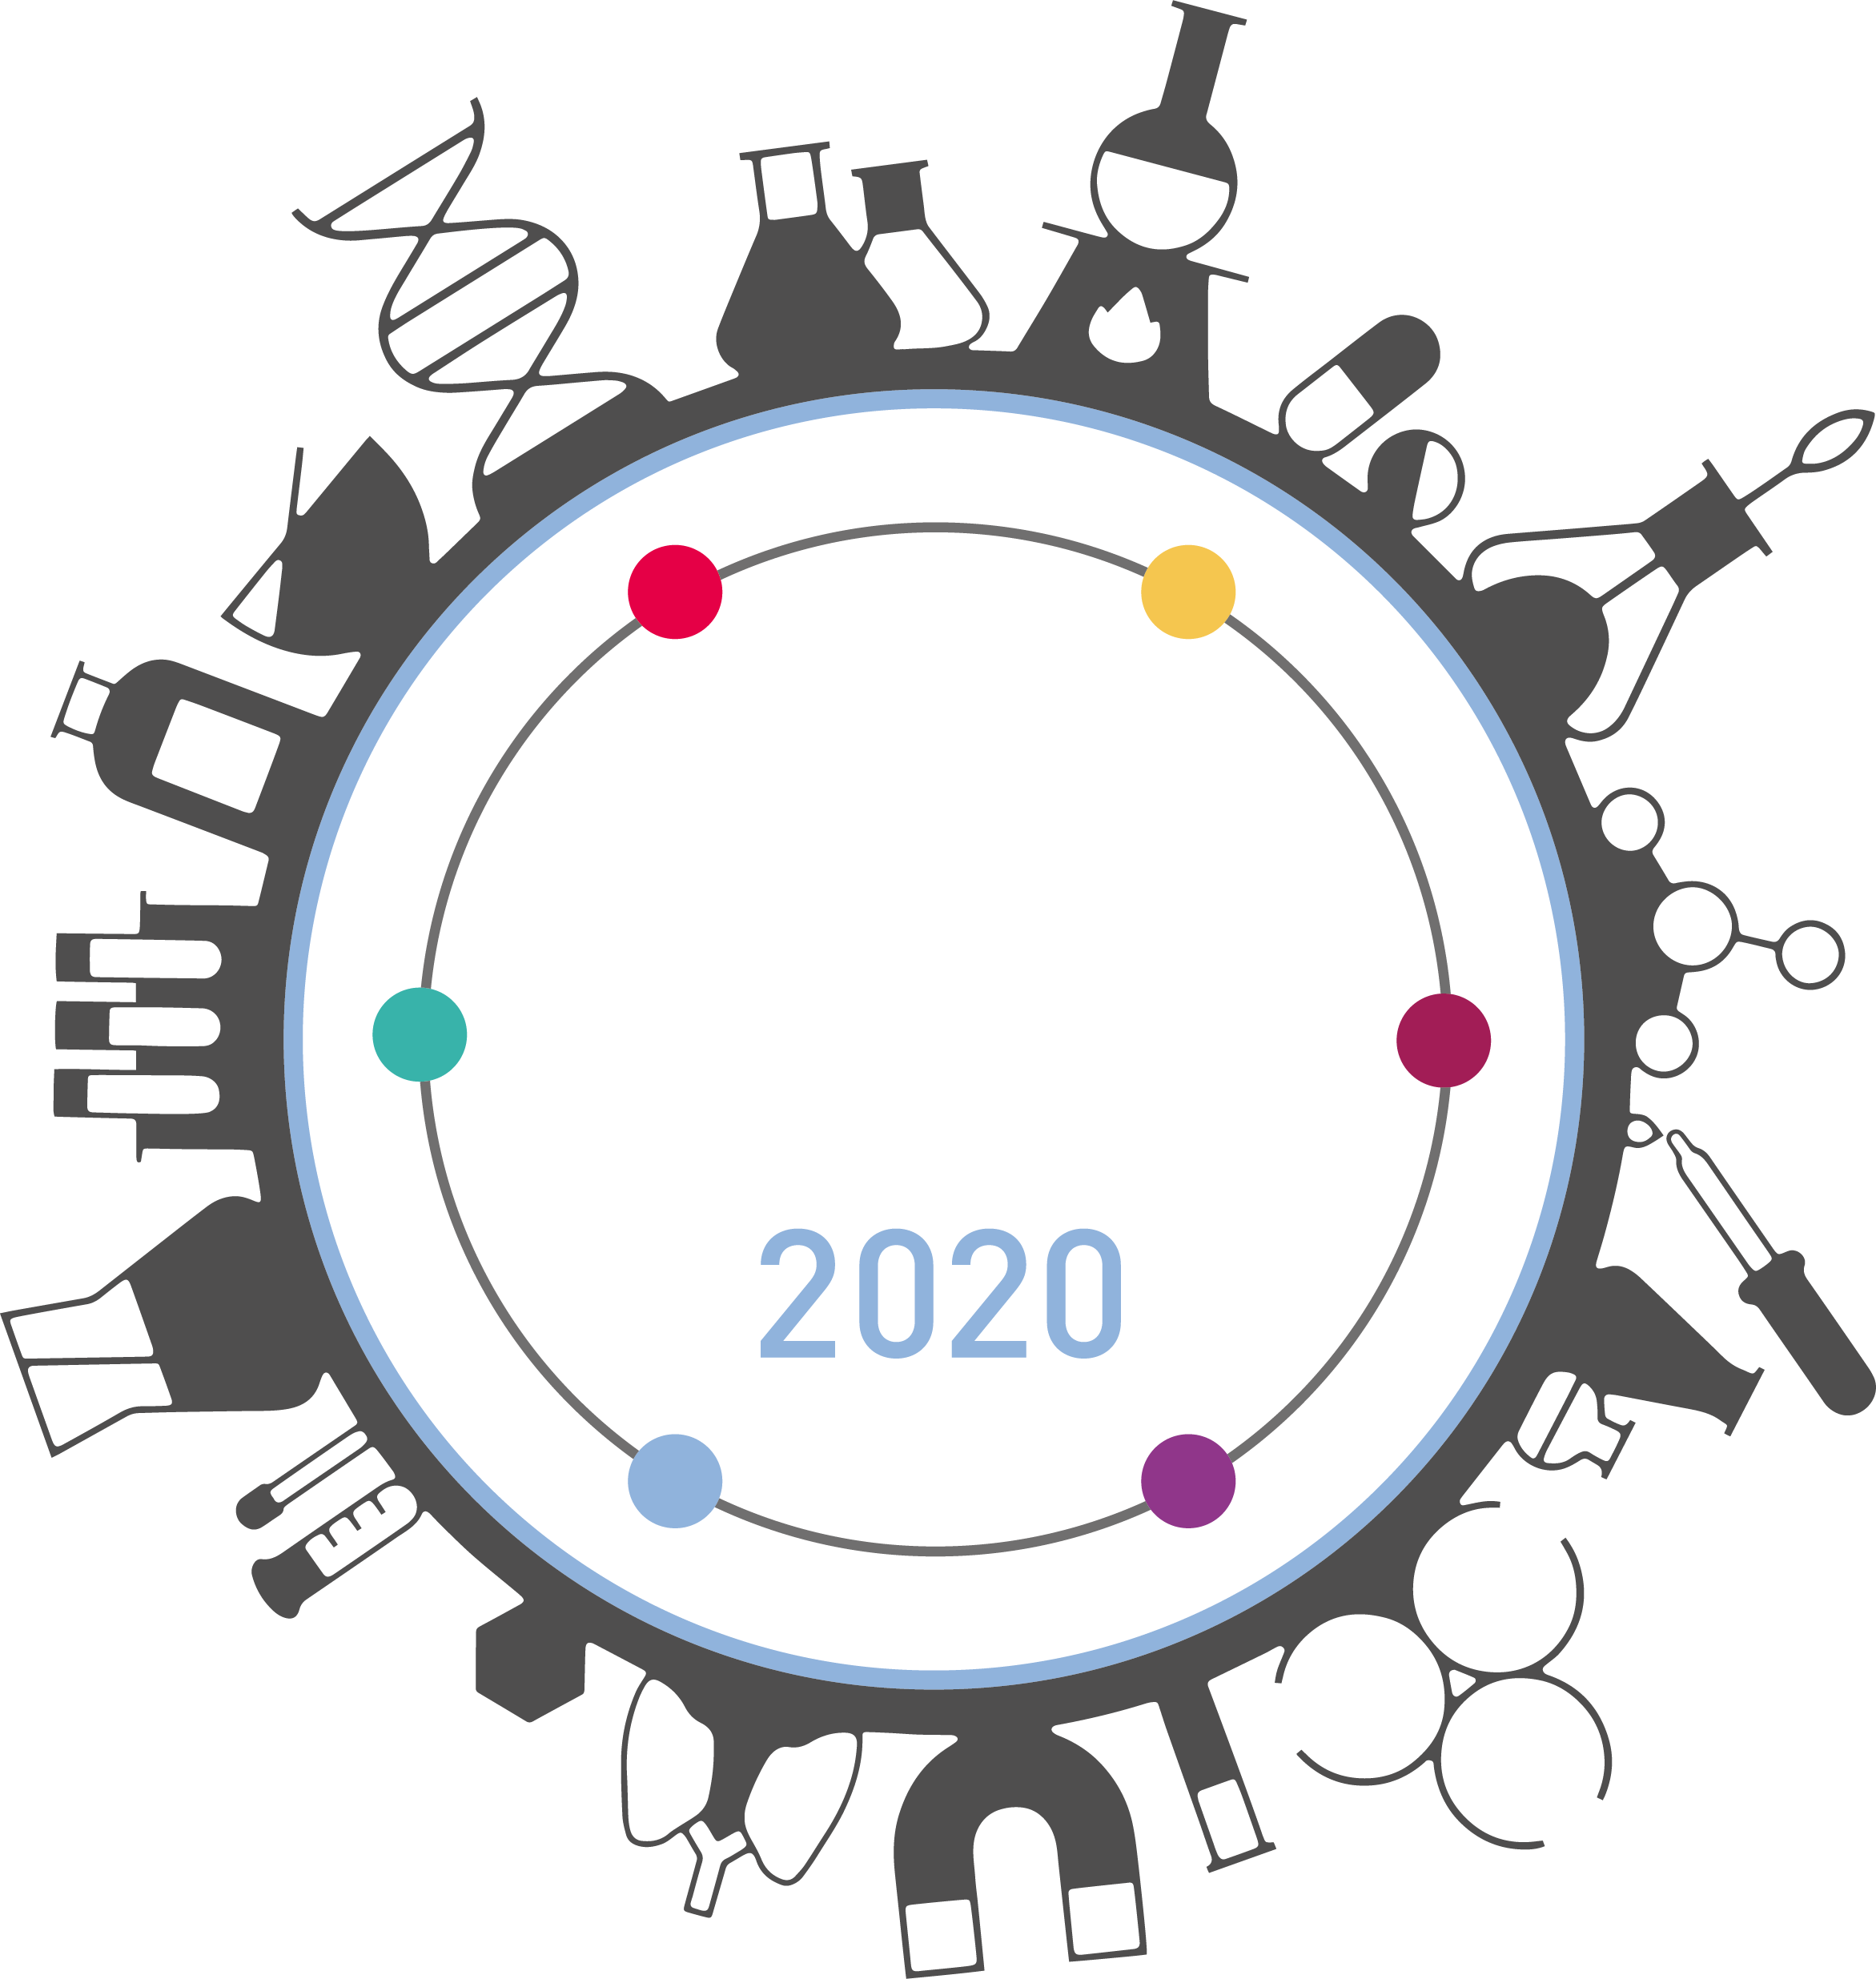 Scientific Laboratory Show and Conference 2020 | SLS Show 2020